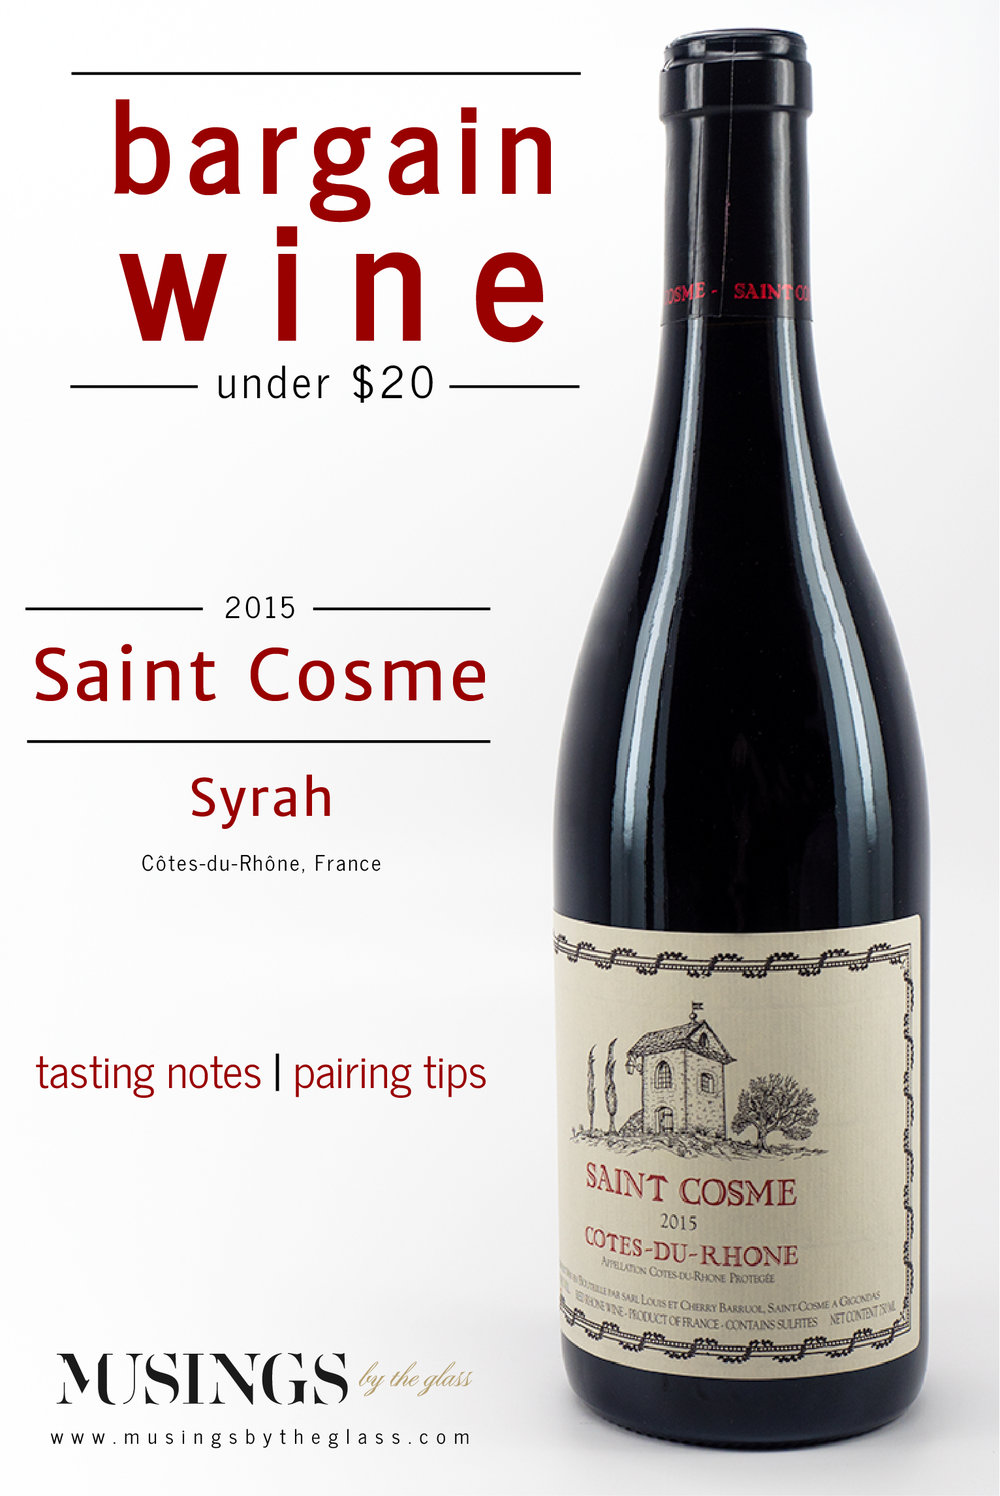 Musings by the Glass - Bargain Wines - Chateau de Saint Cosme Cotes-Du-Rhone Syrah France